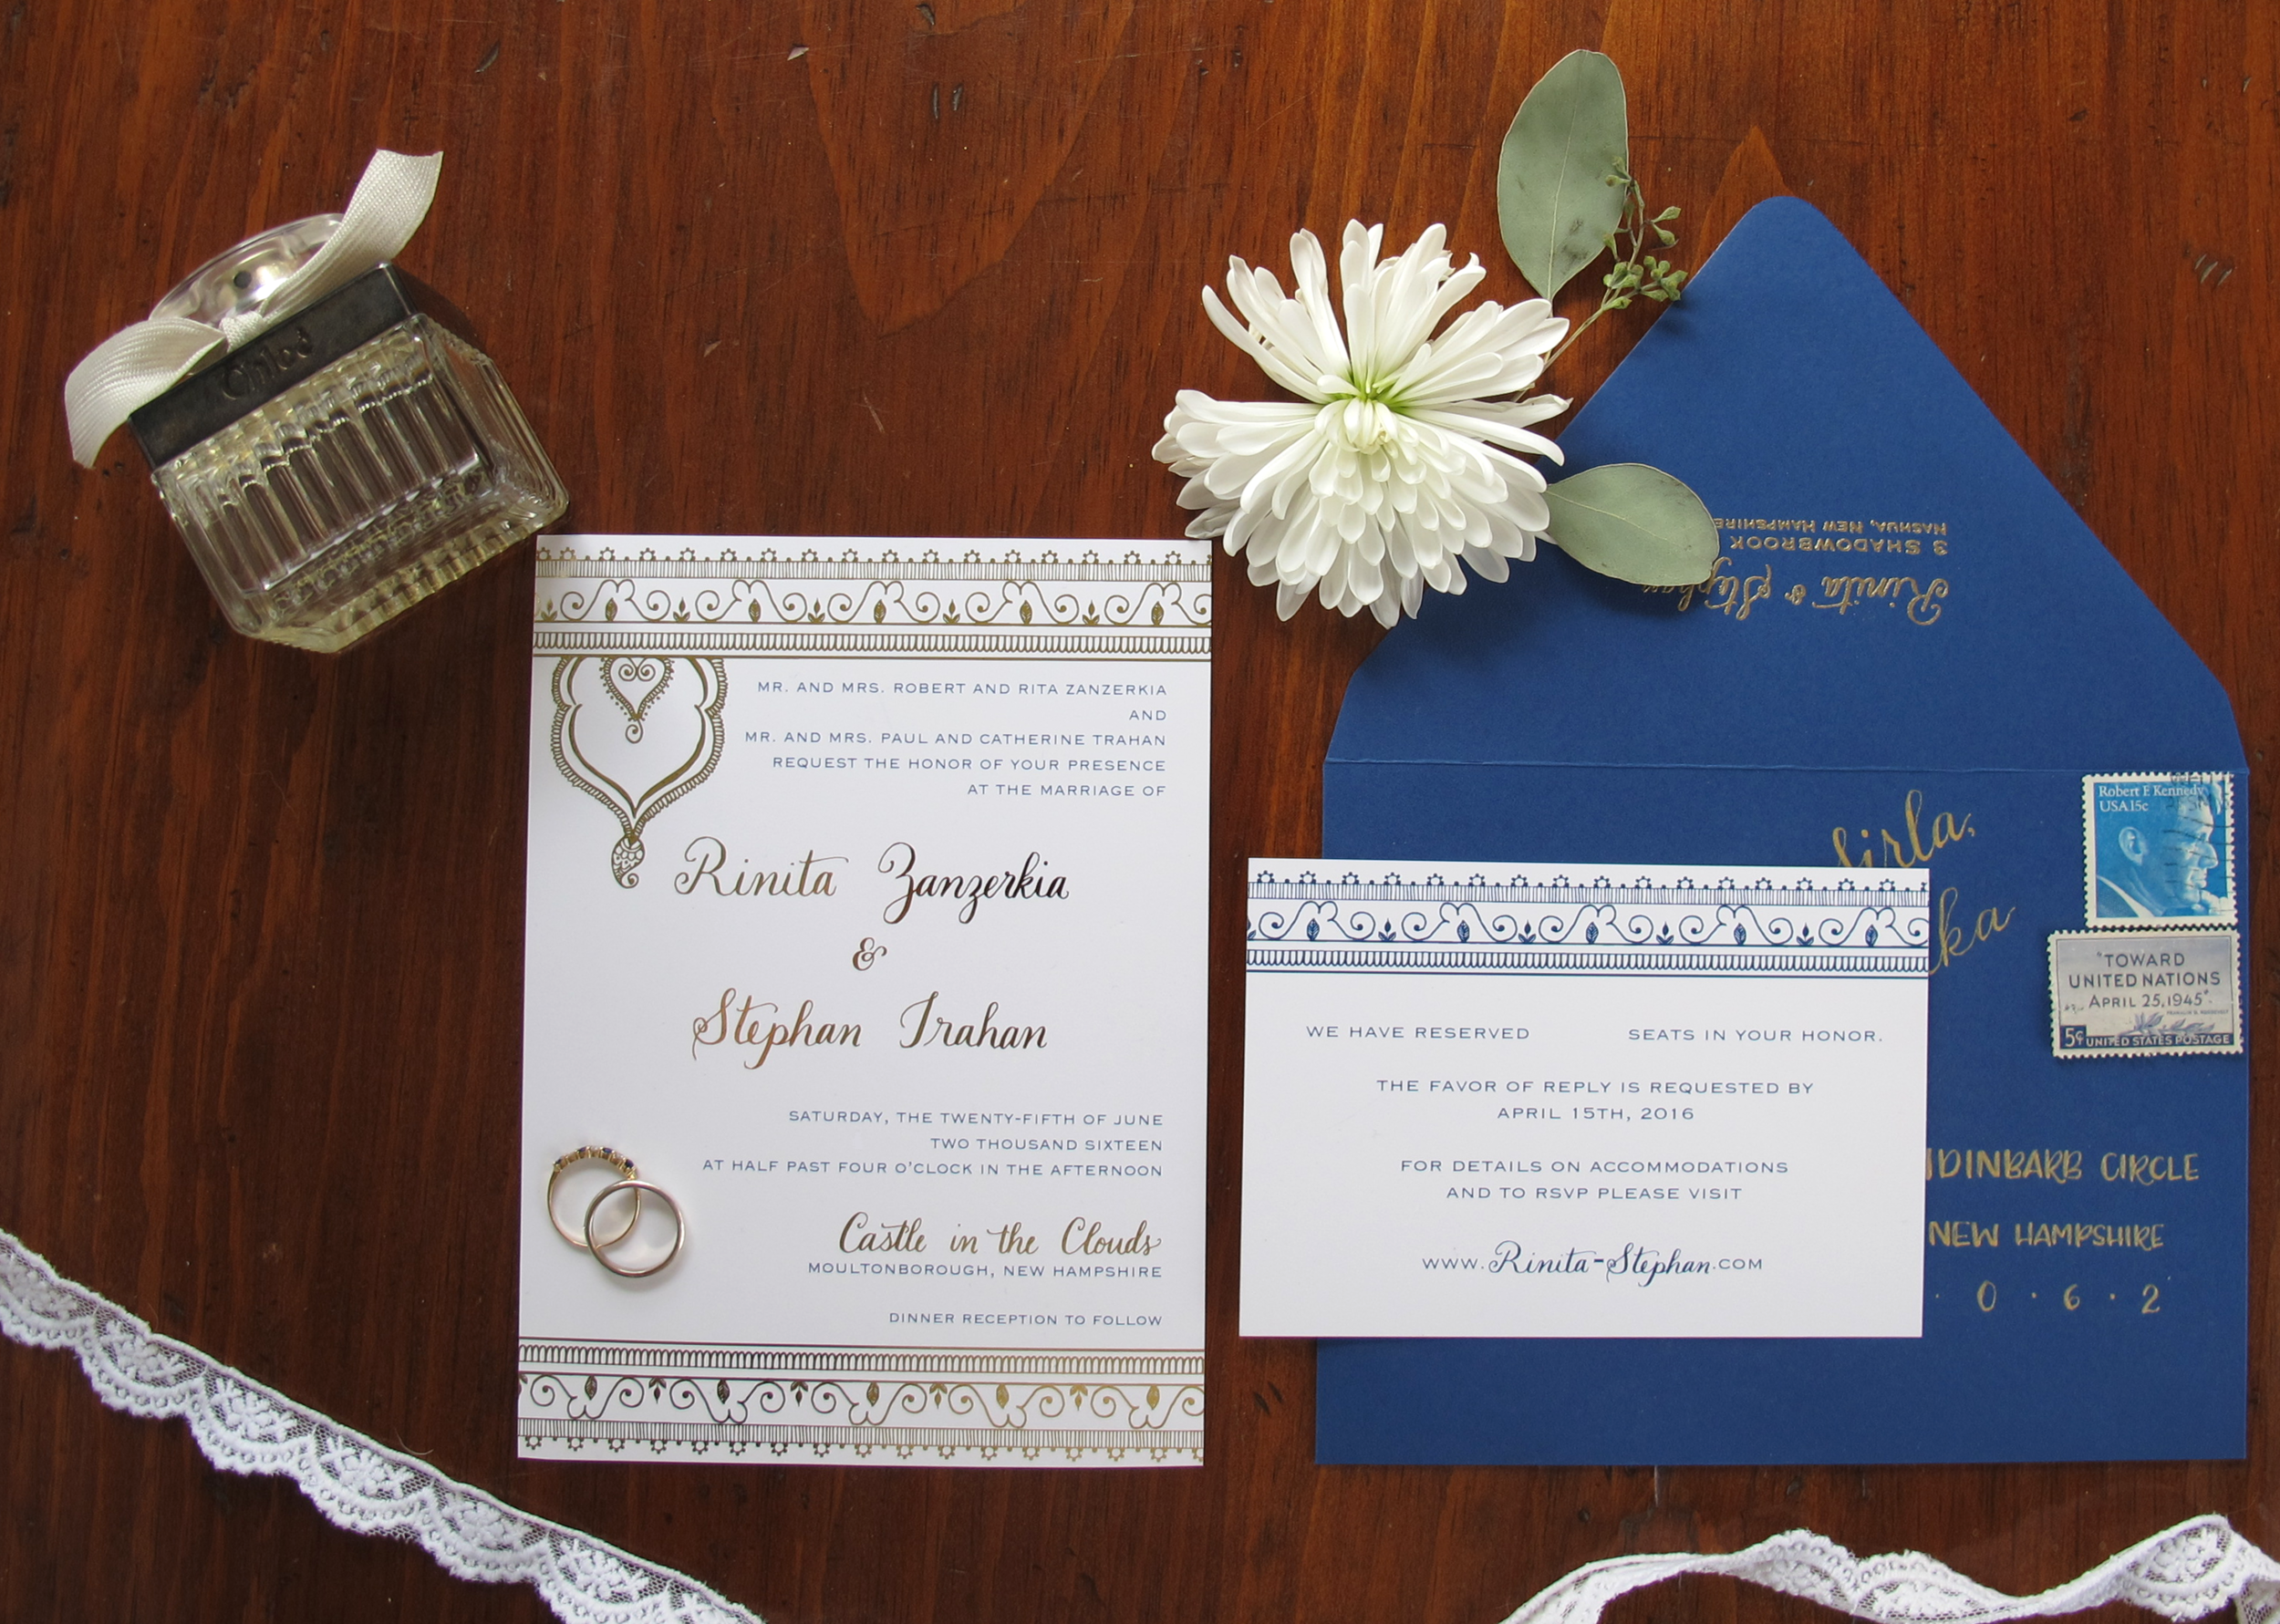 Mehndi wedding invitation suite completed with gold foil mehndi design from the bride's henna and navy lettering coordinating with the calligraphy in gold ink on the navy envelopes